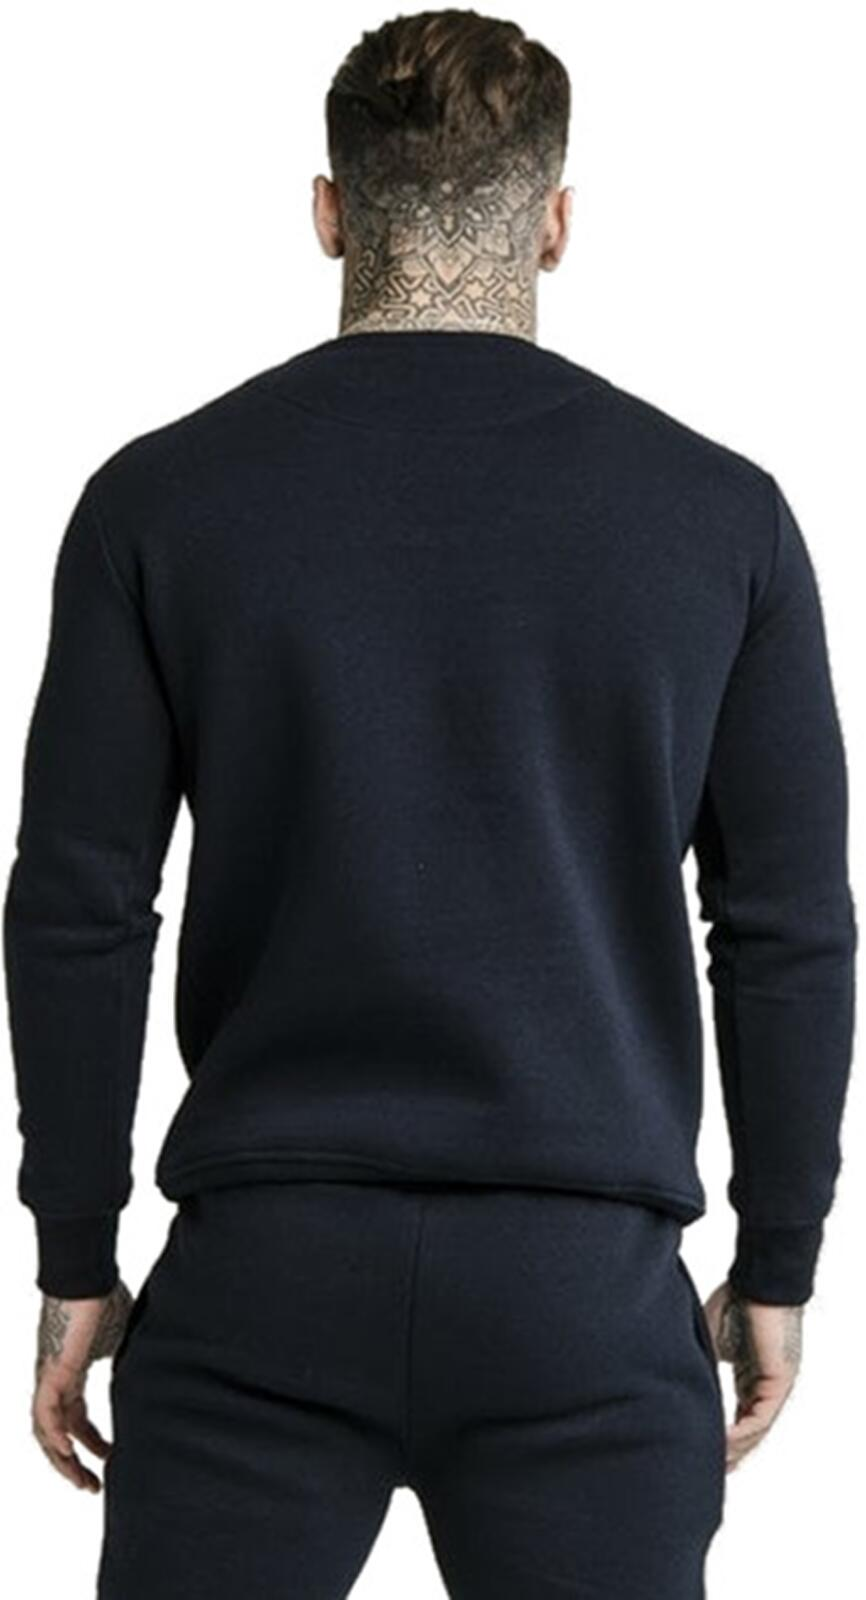 Sik Silk Sweatshirt Navy